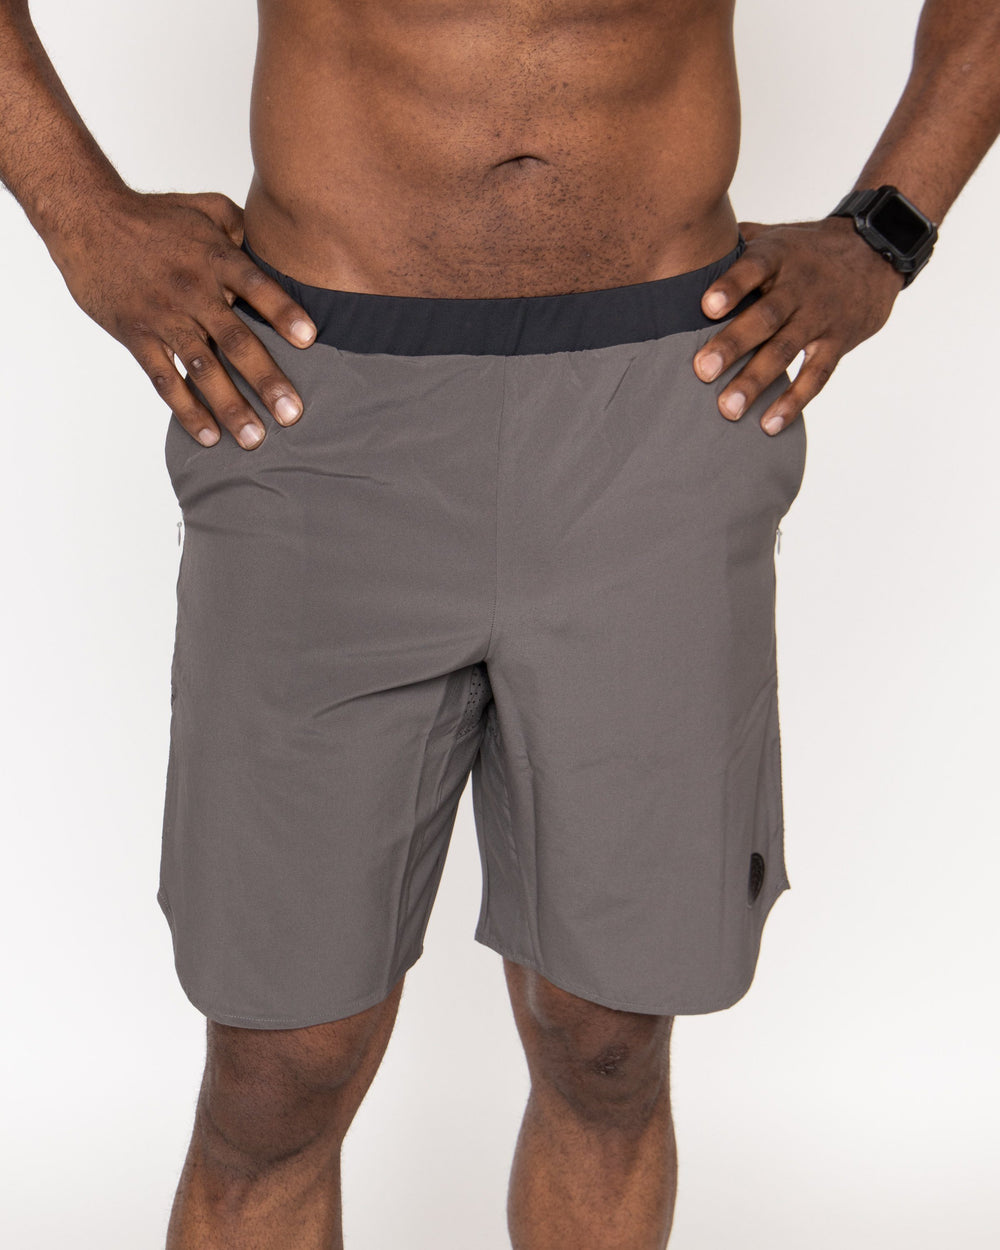 Velocity Shorts - Gray Men's Shorts STAIX